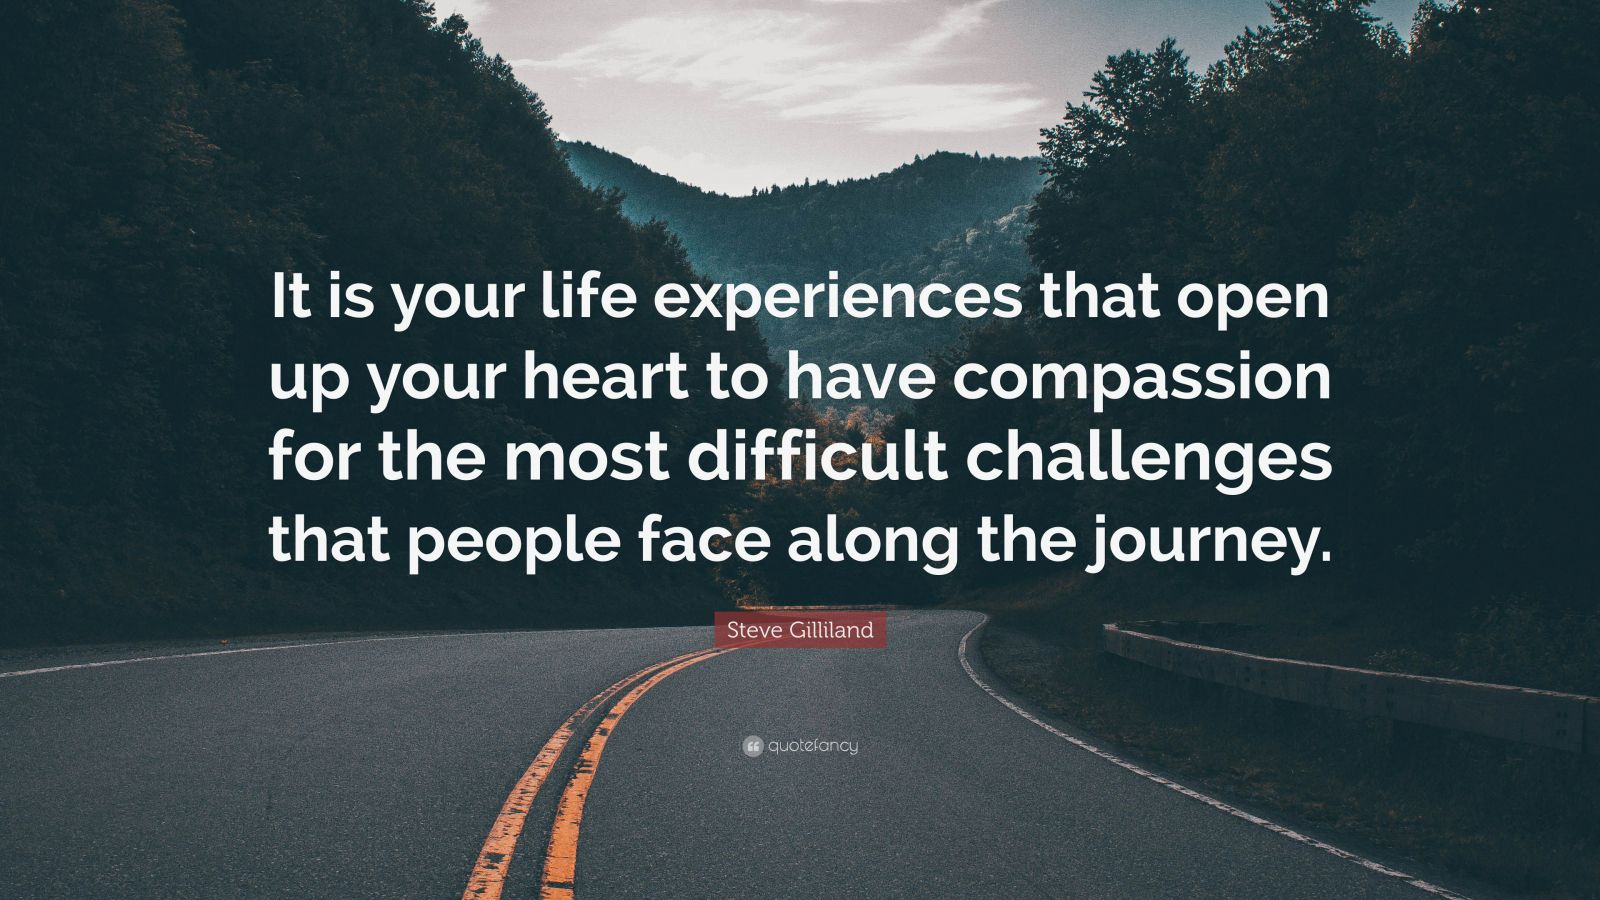 """Steve Gilliland Quote: """"It is your life experiences that open up your heart to have compassion for the most difficult challenges that people face along the journey."""""""